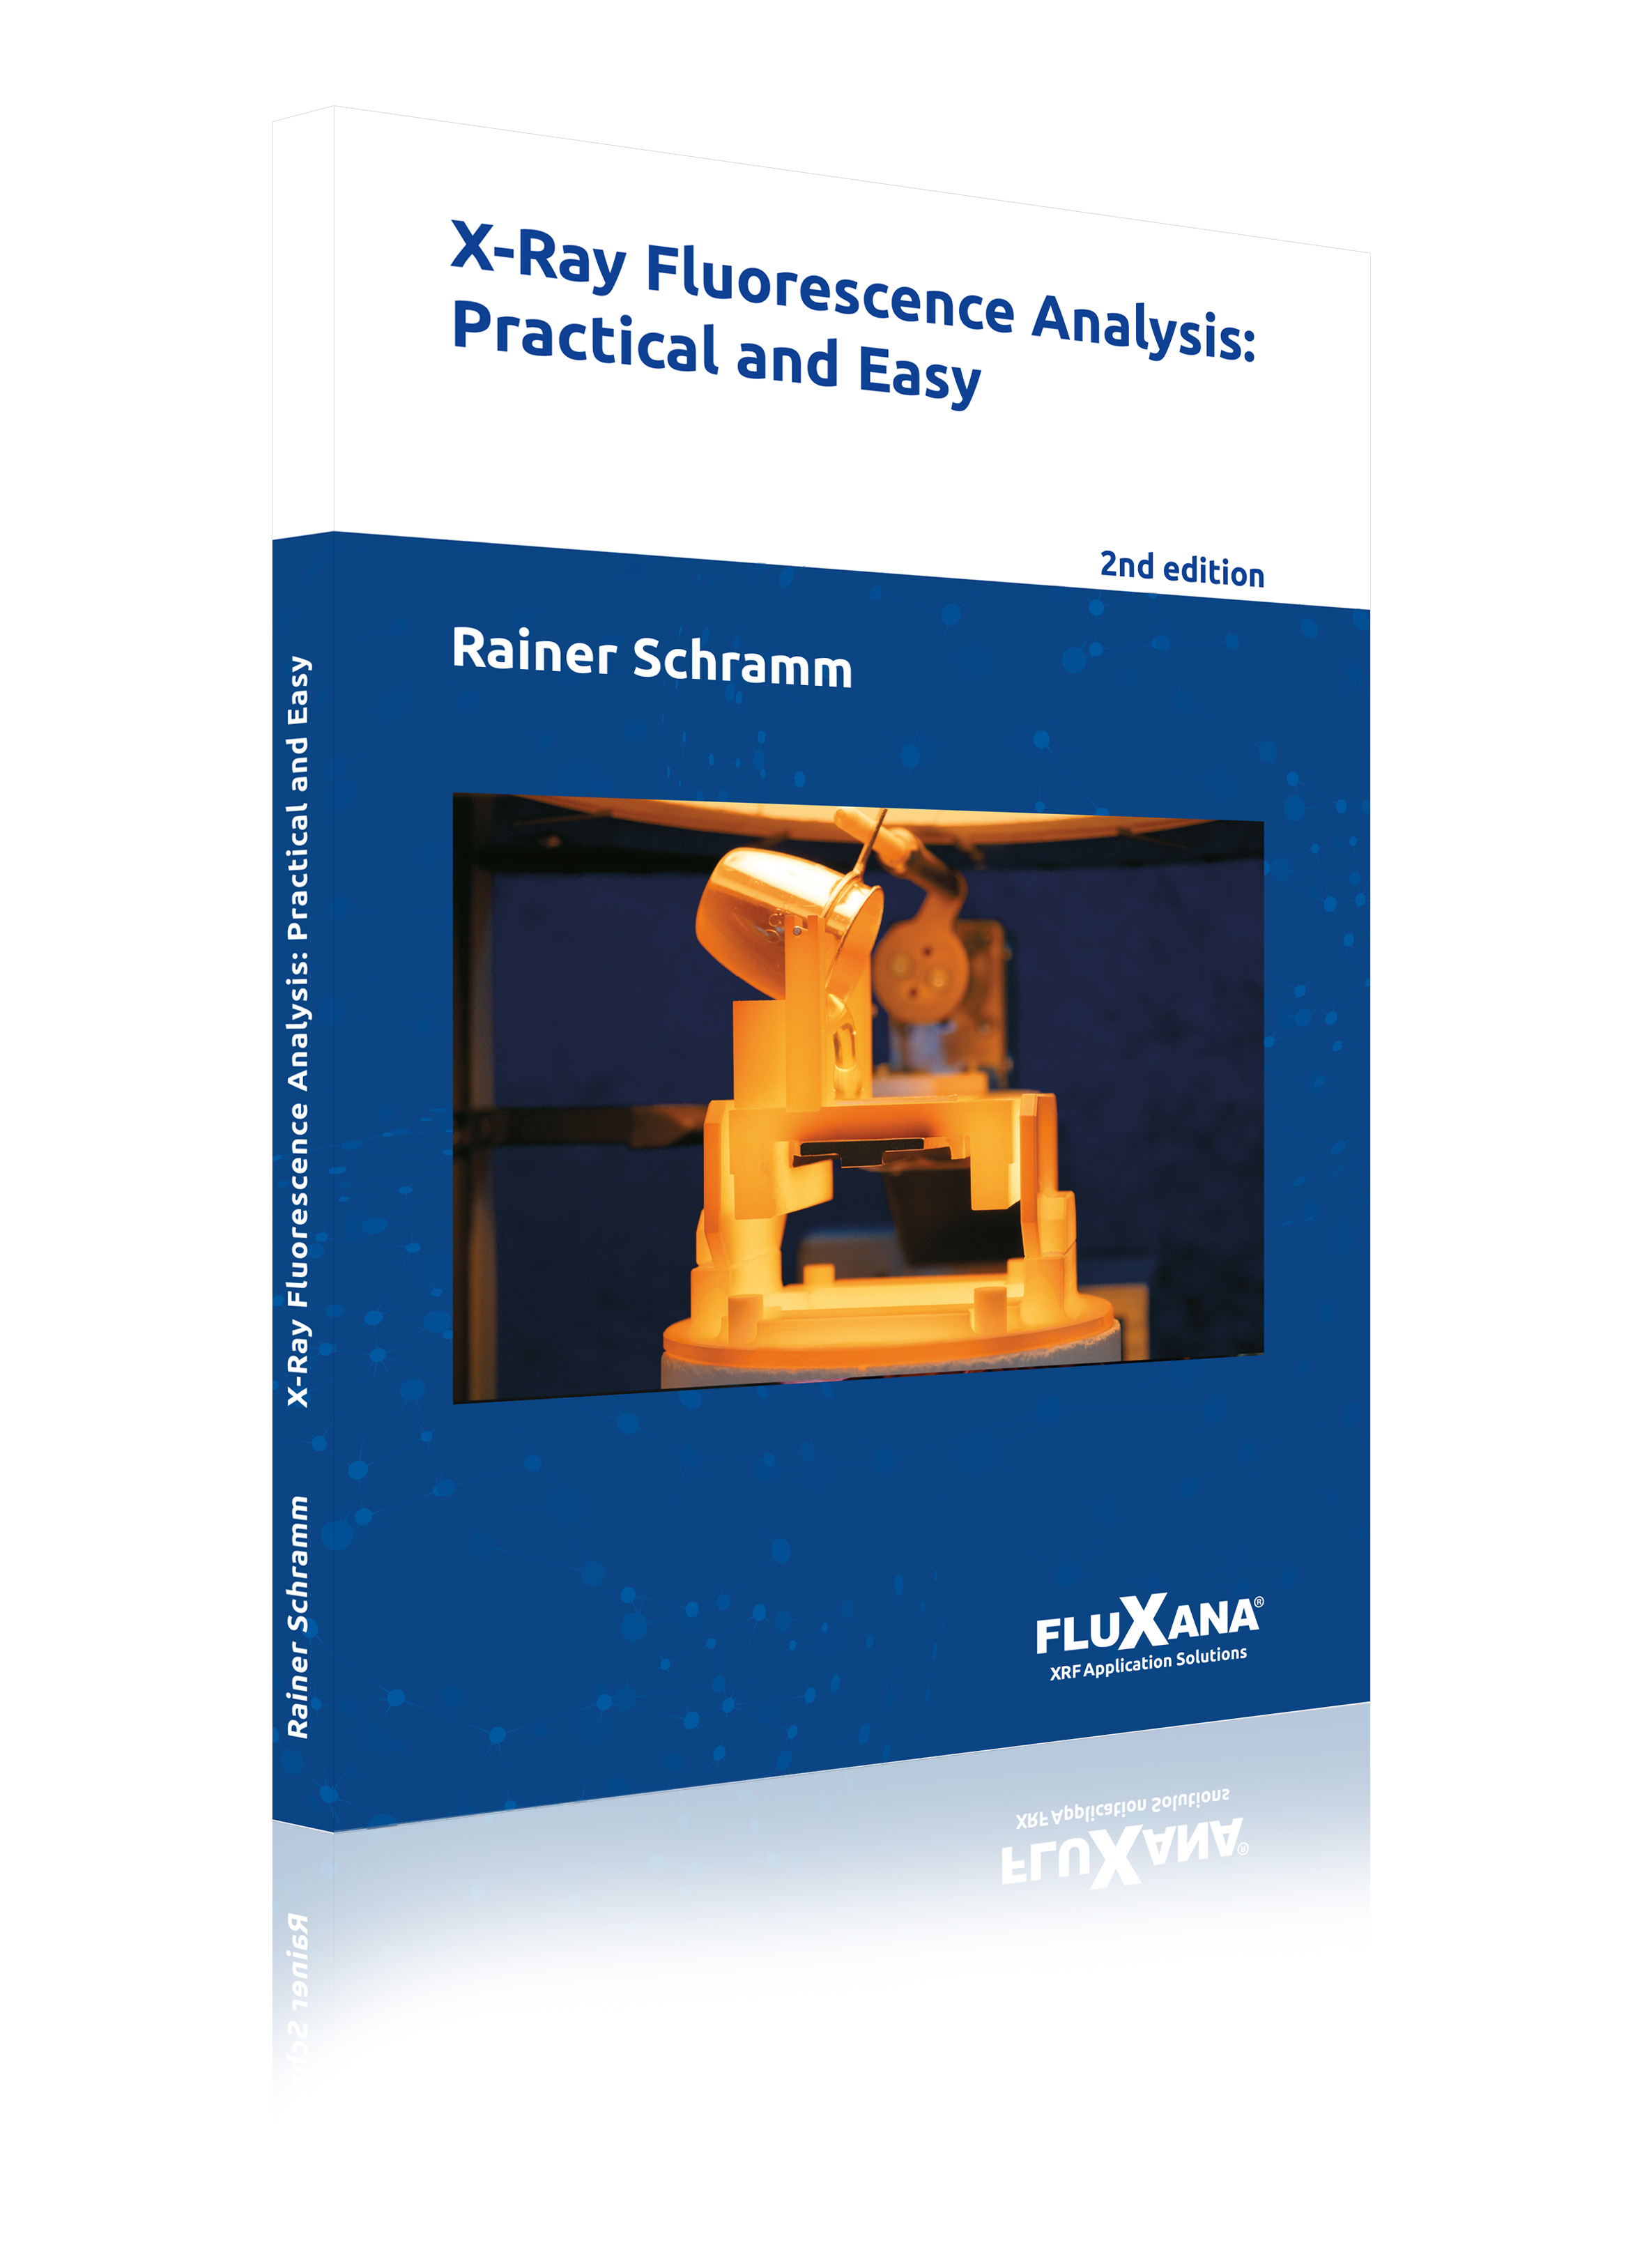 Book X-ray Fluorescence Analysis Practical and Easy